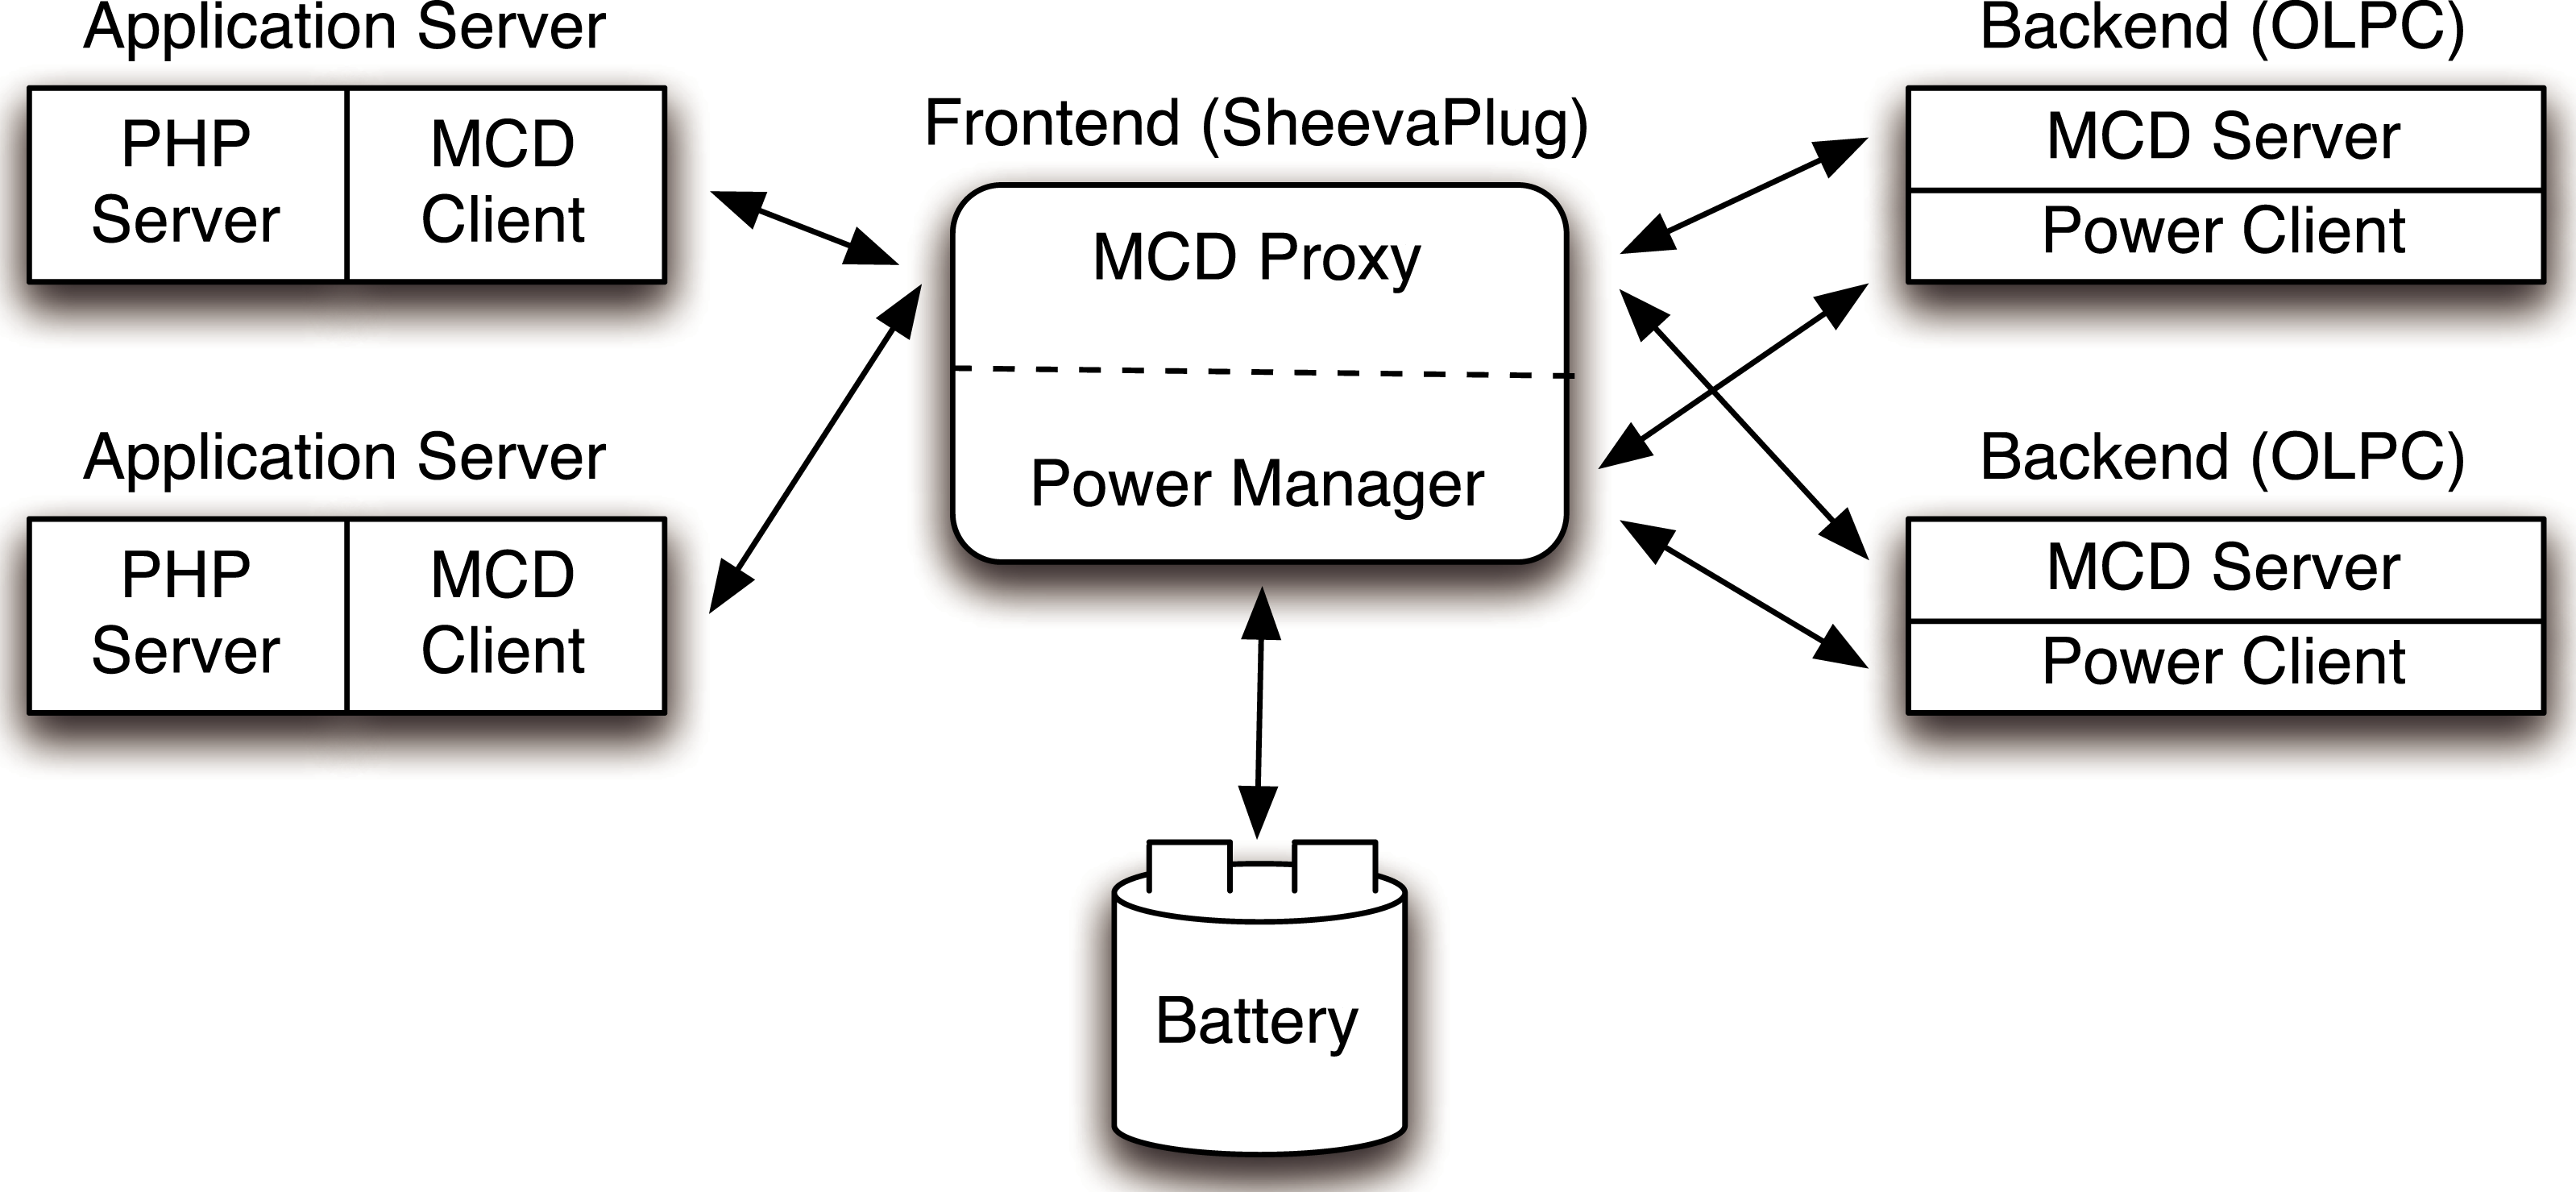 Managing server clusters on intermittent power [PeerJ]